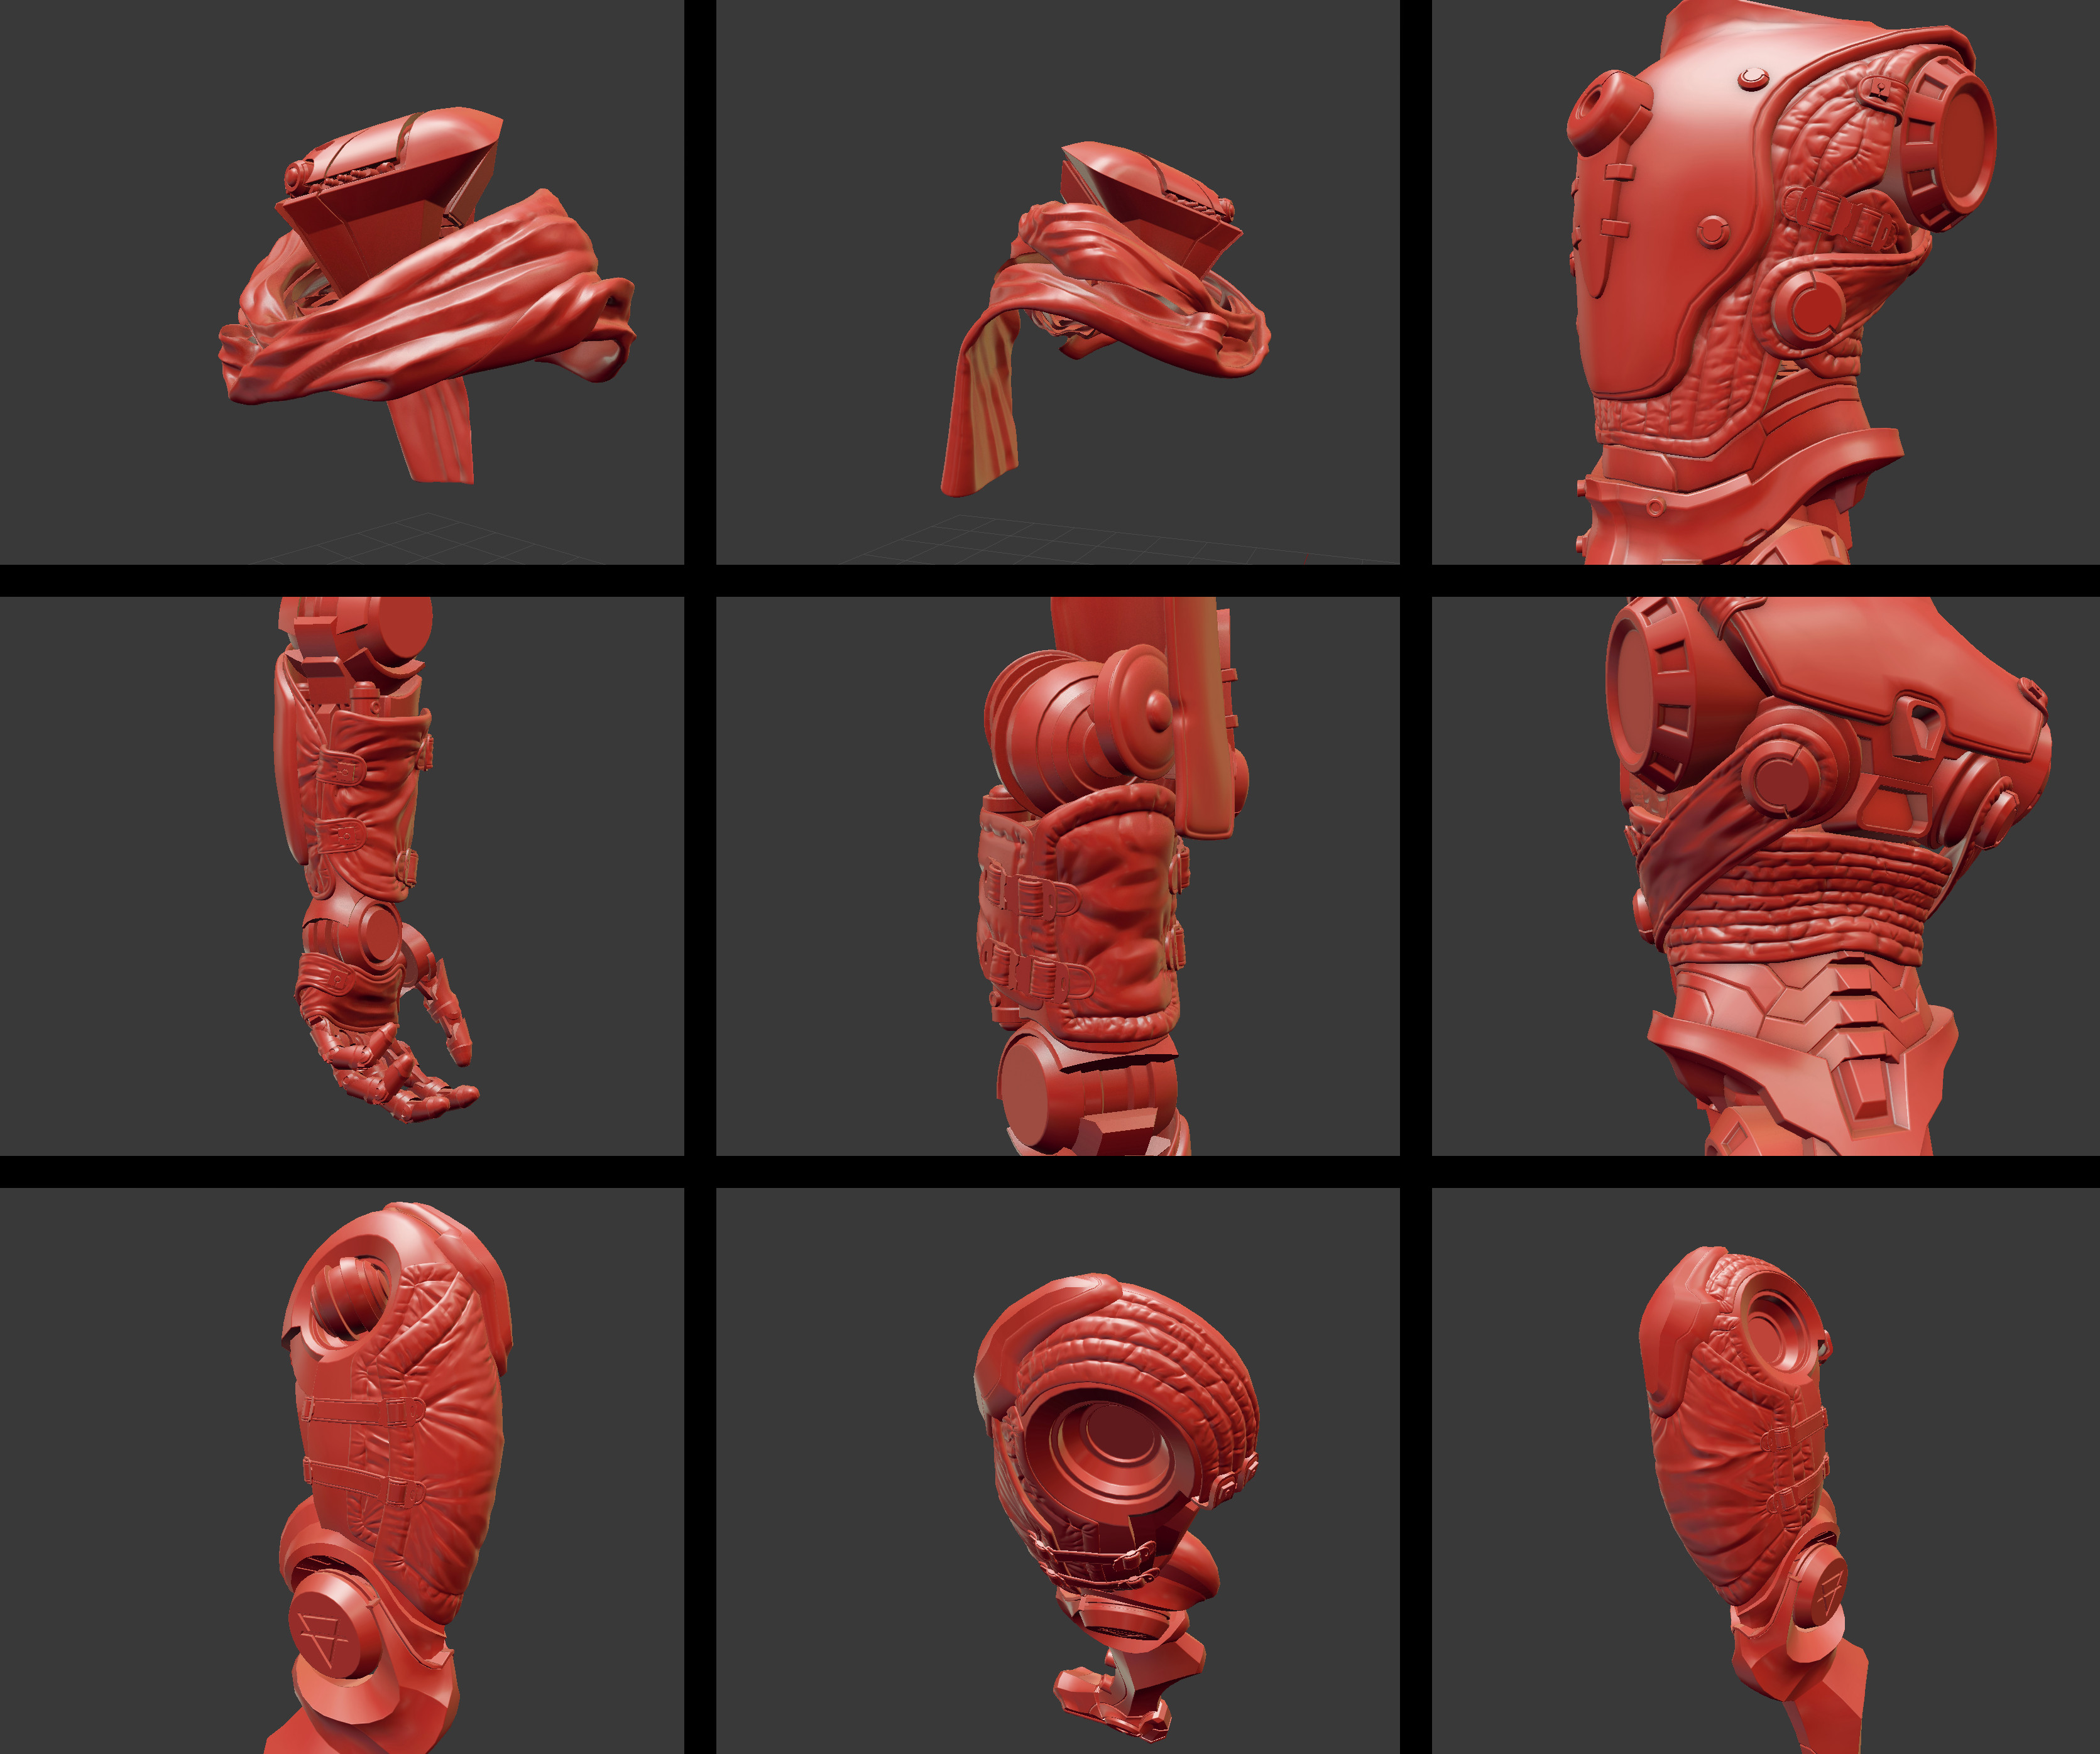 Fabric and armor sculpt